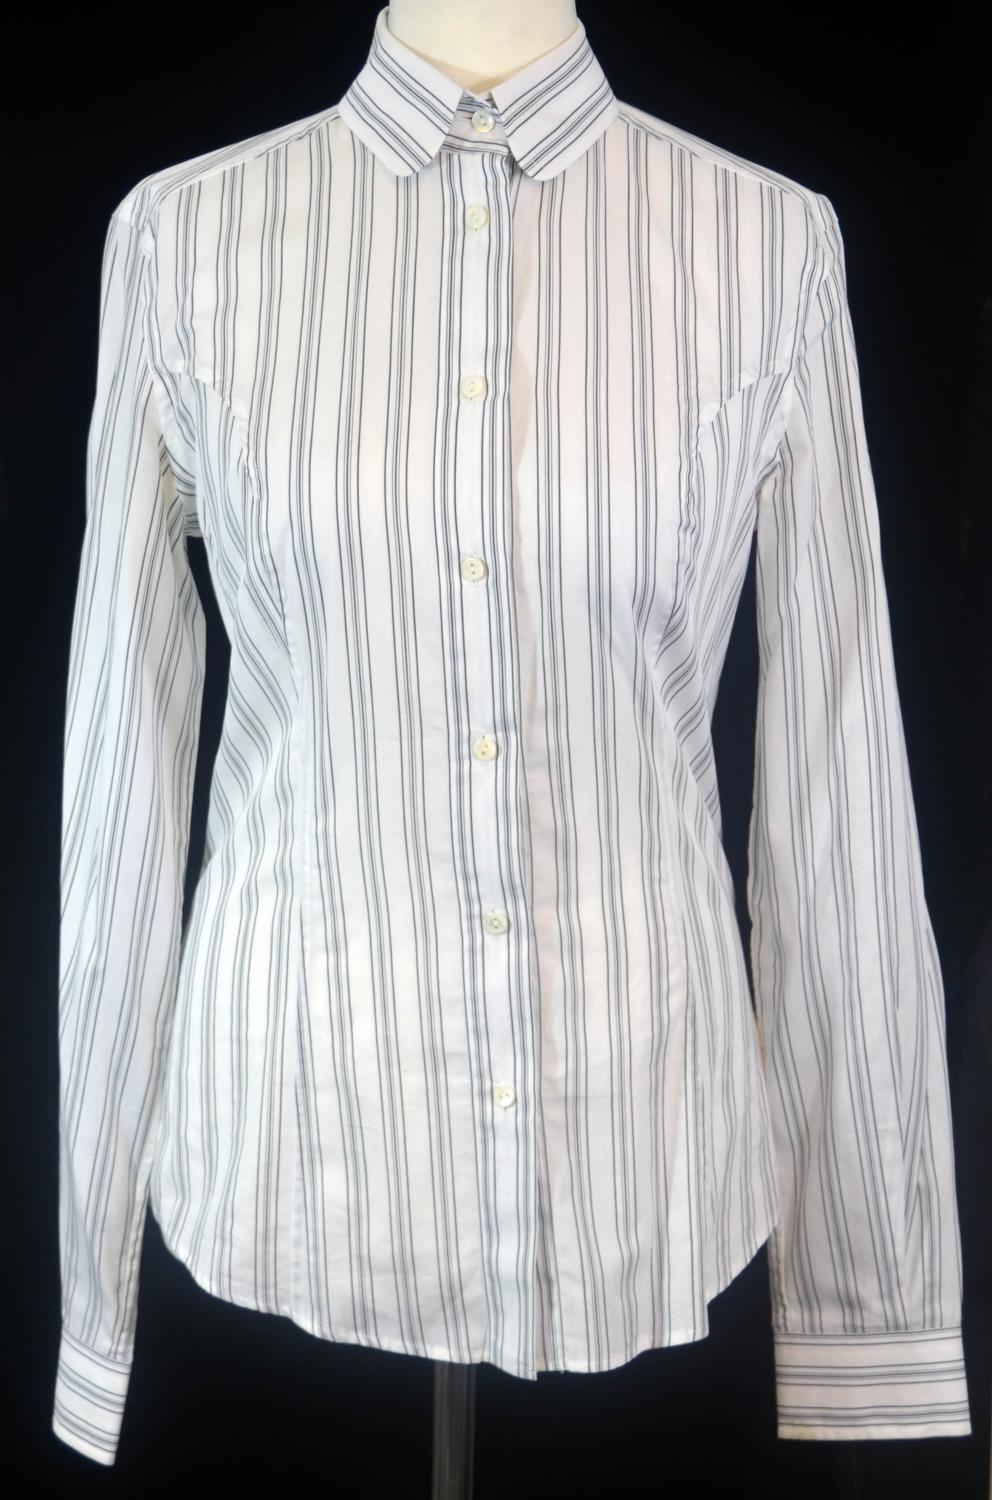 Lot 275 - DOLCE & GABBANA, WHITE COTTON SHIRT With black stripes and tailored waist (size 44). A